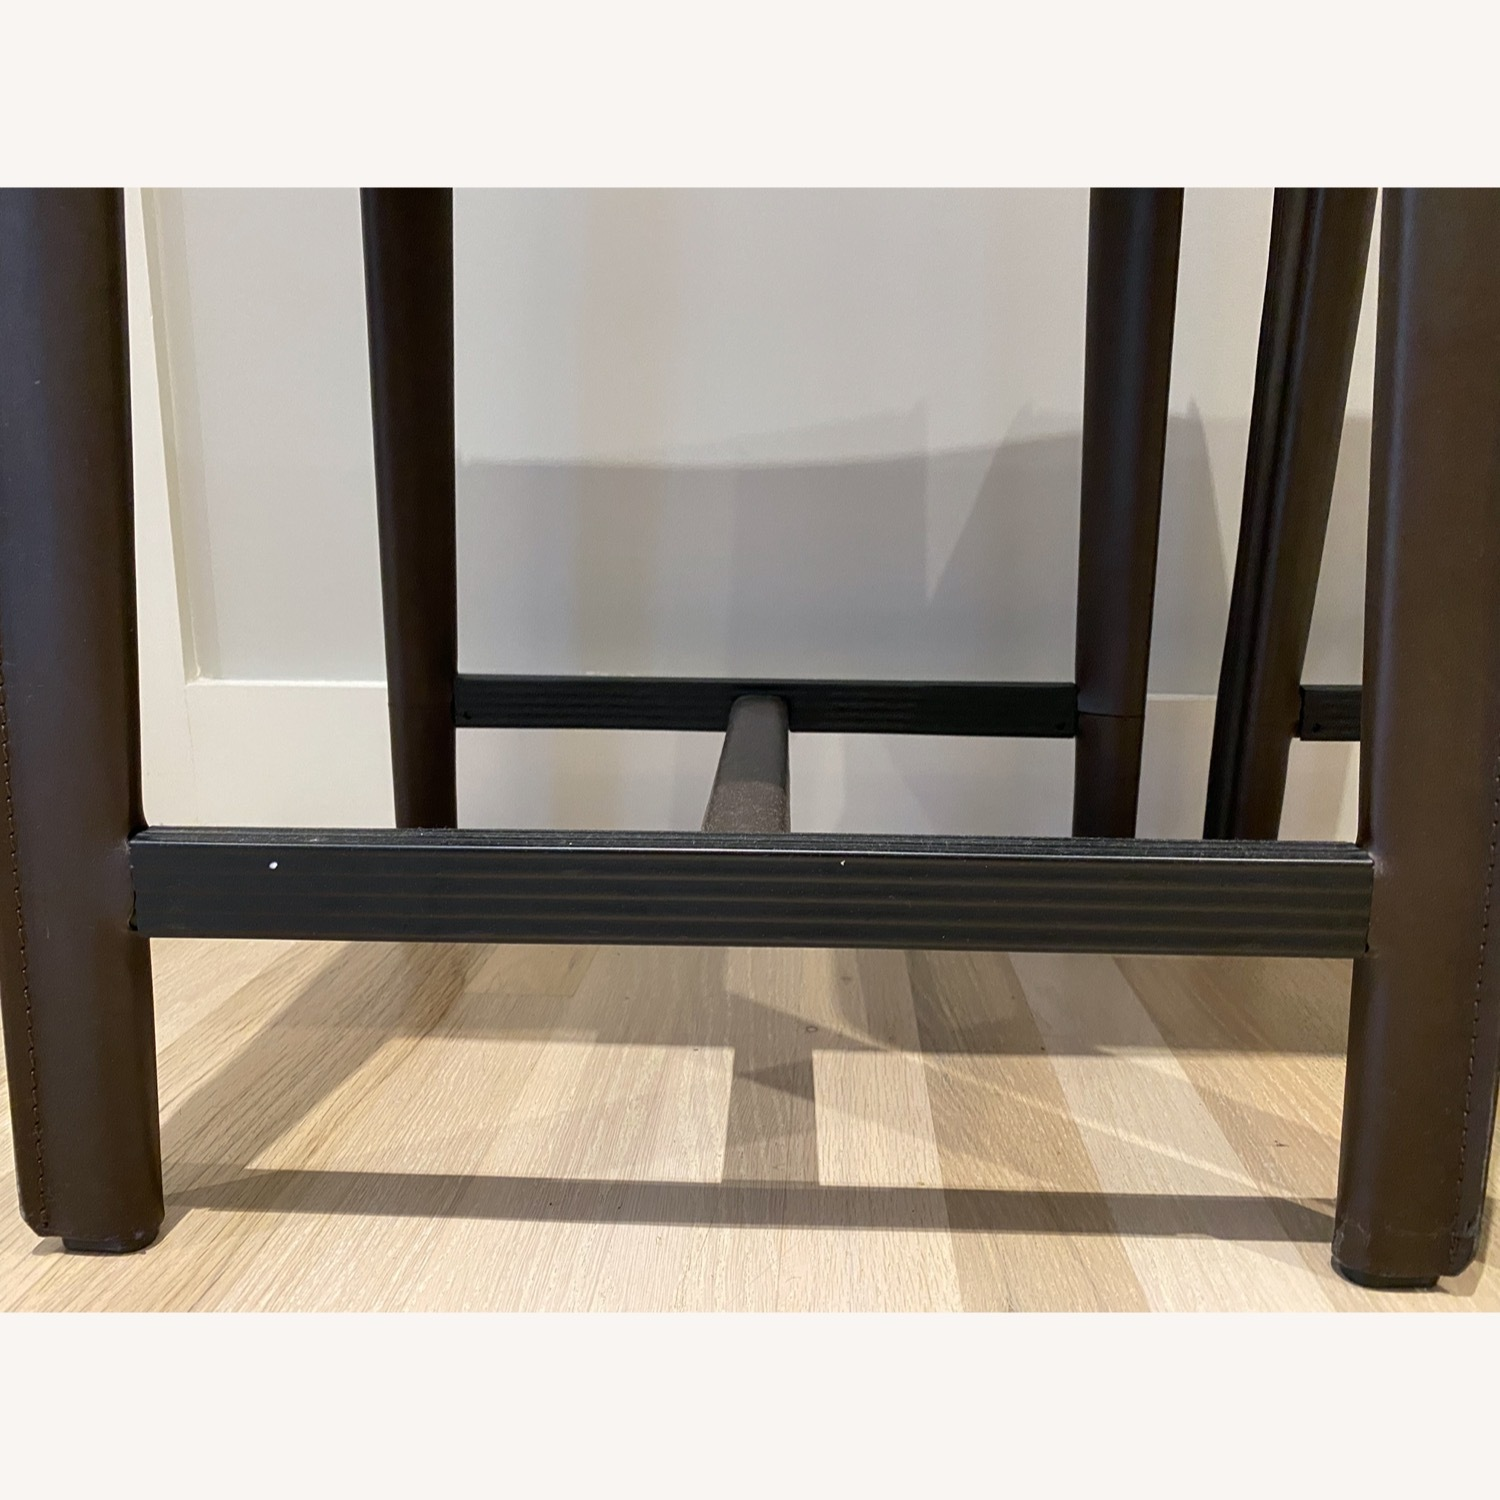 Set of Crate & Barrel Backless Counter Stools - image-6